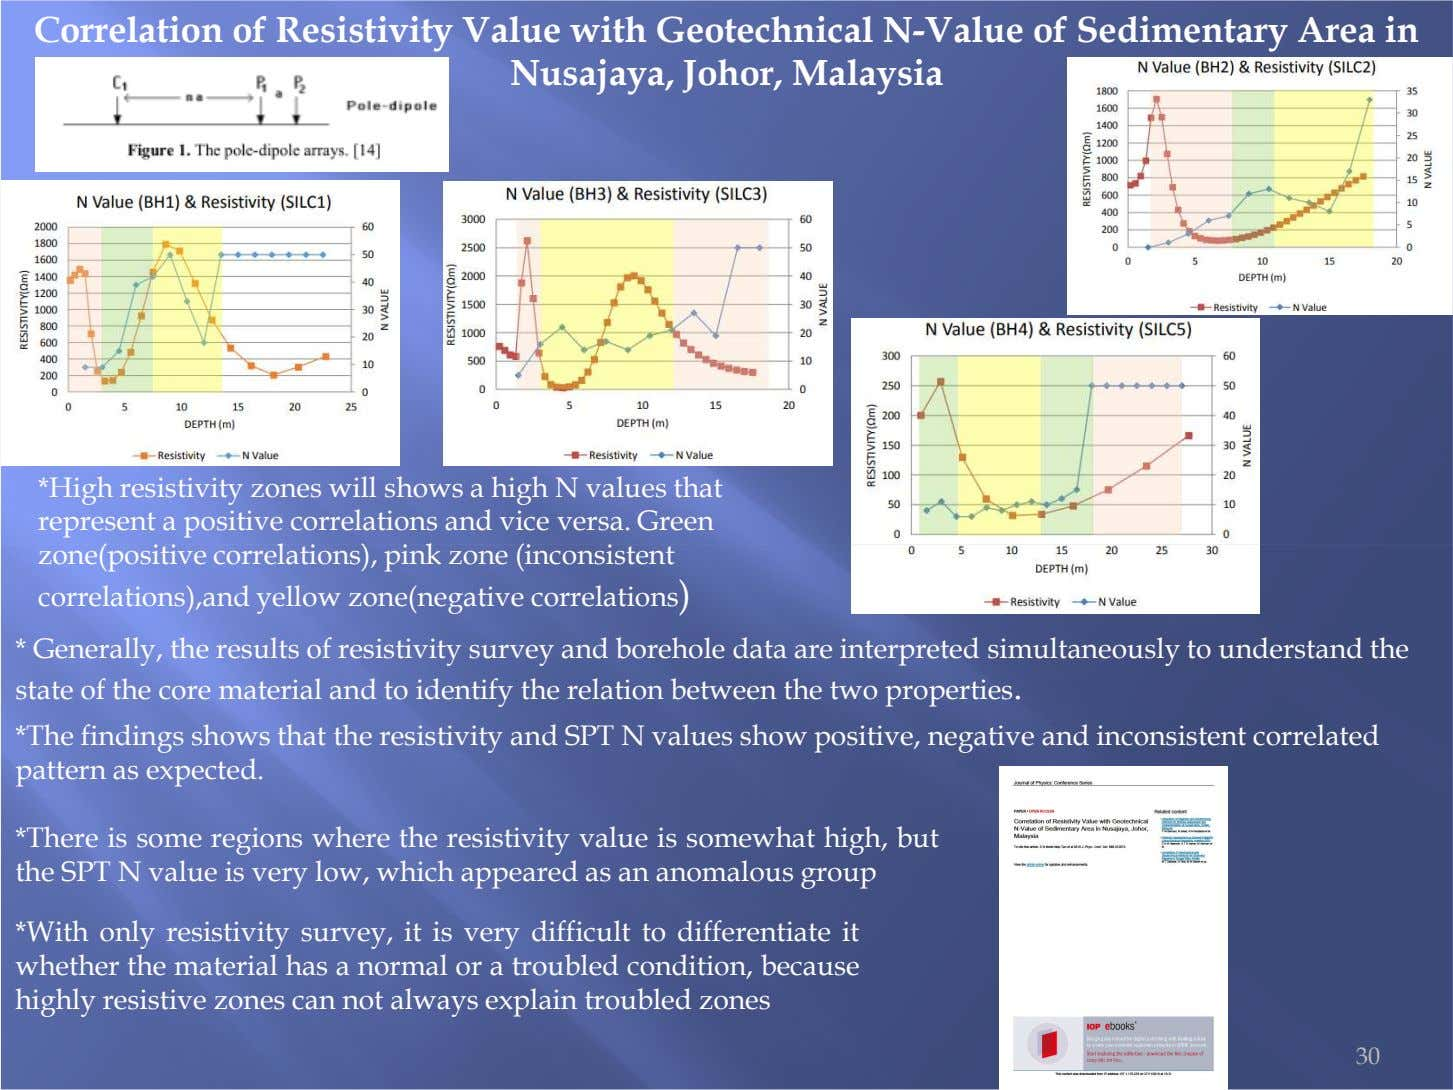 Correlation of Resistivity Value with Geotechnical N-Value of Sedimentary Area in Nusajaya, Johor, Malaysia *High